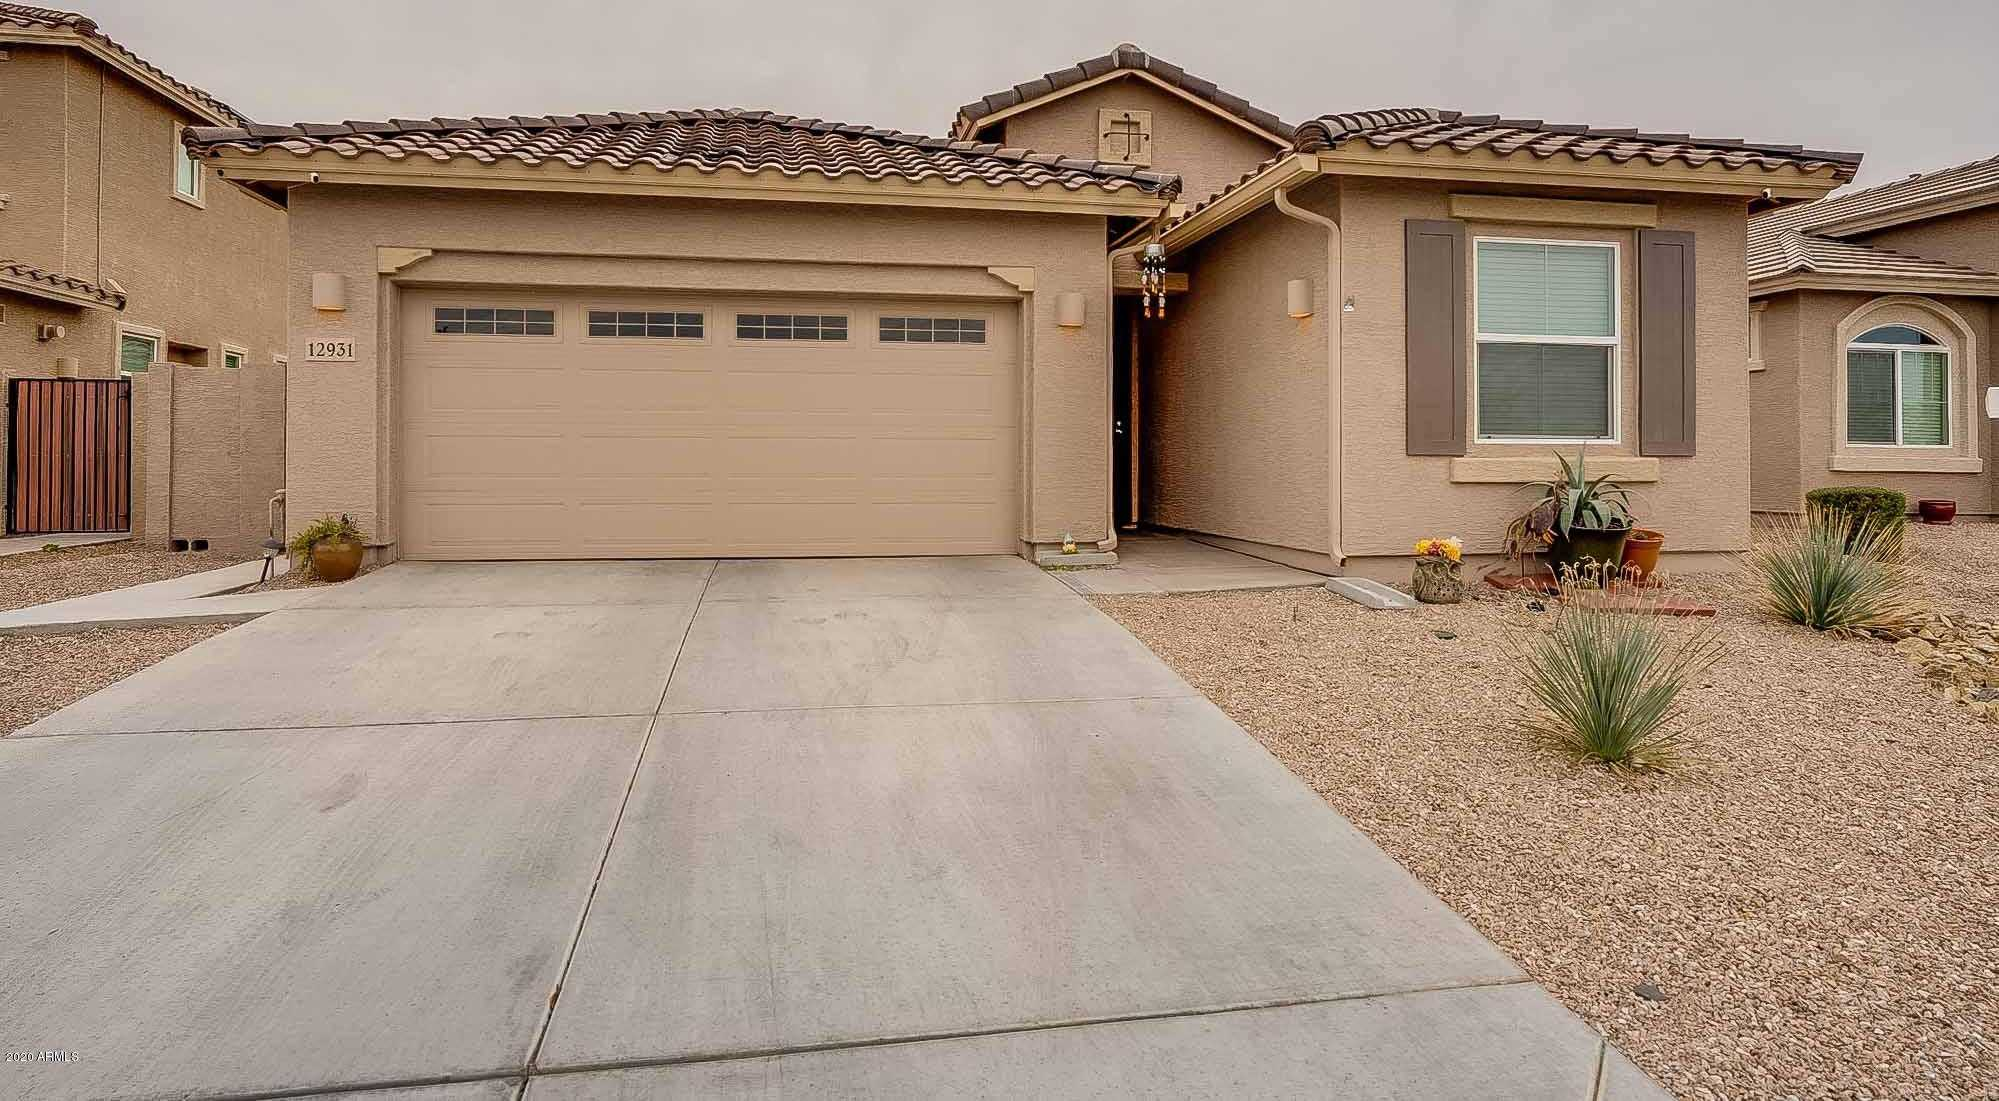 $305,000 - 4Br/3Ba - Home for Sale in Solare Ranch Subdivision, Glendale